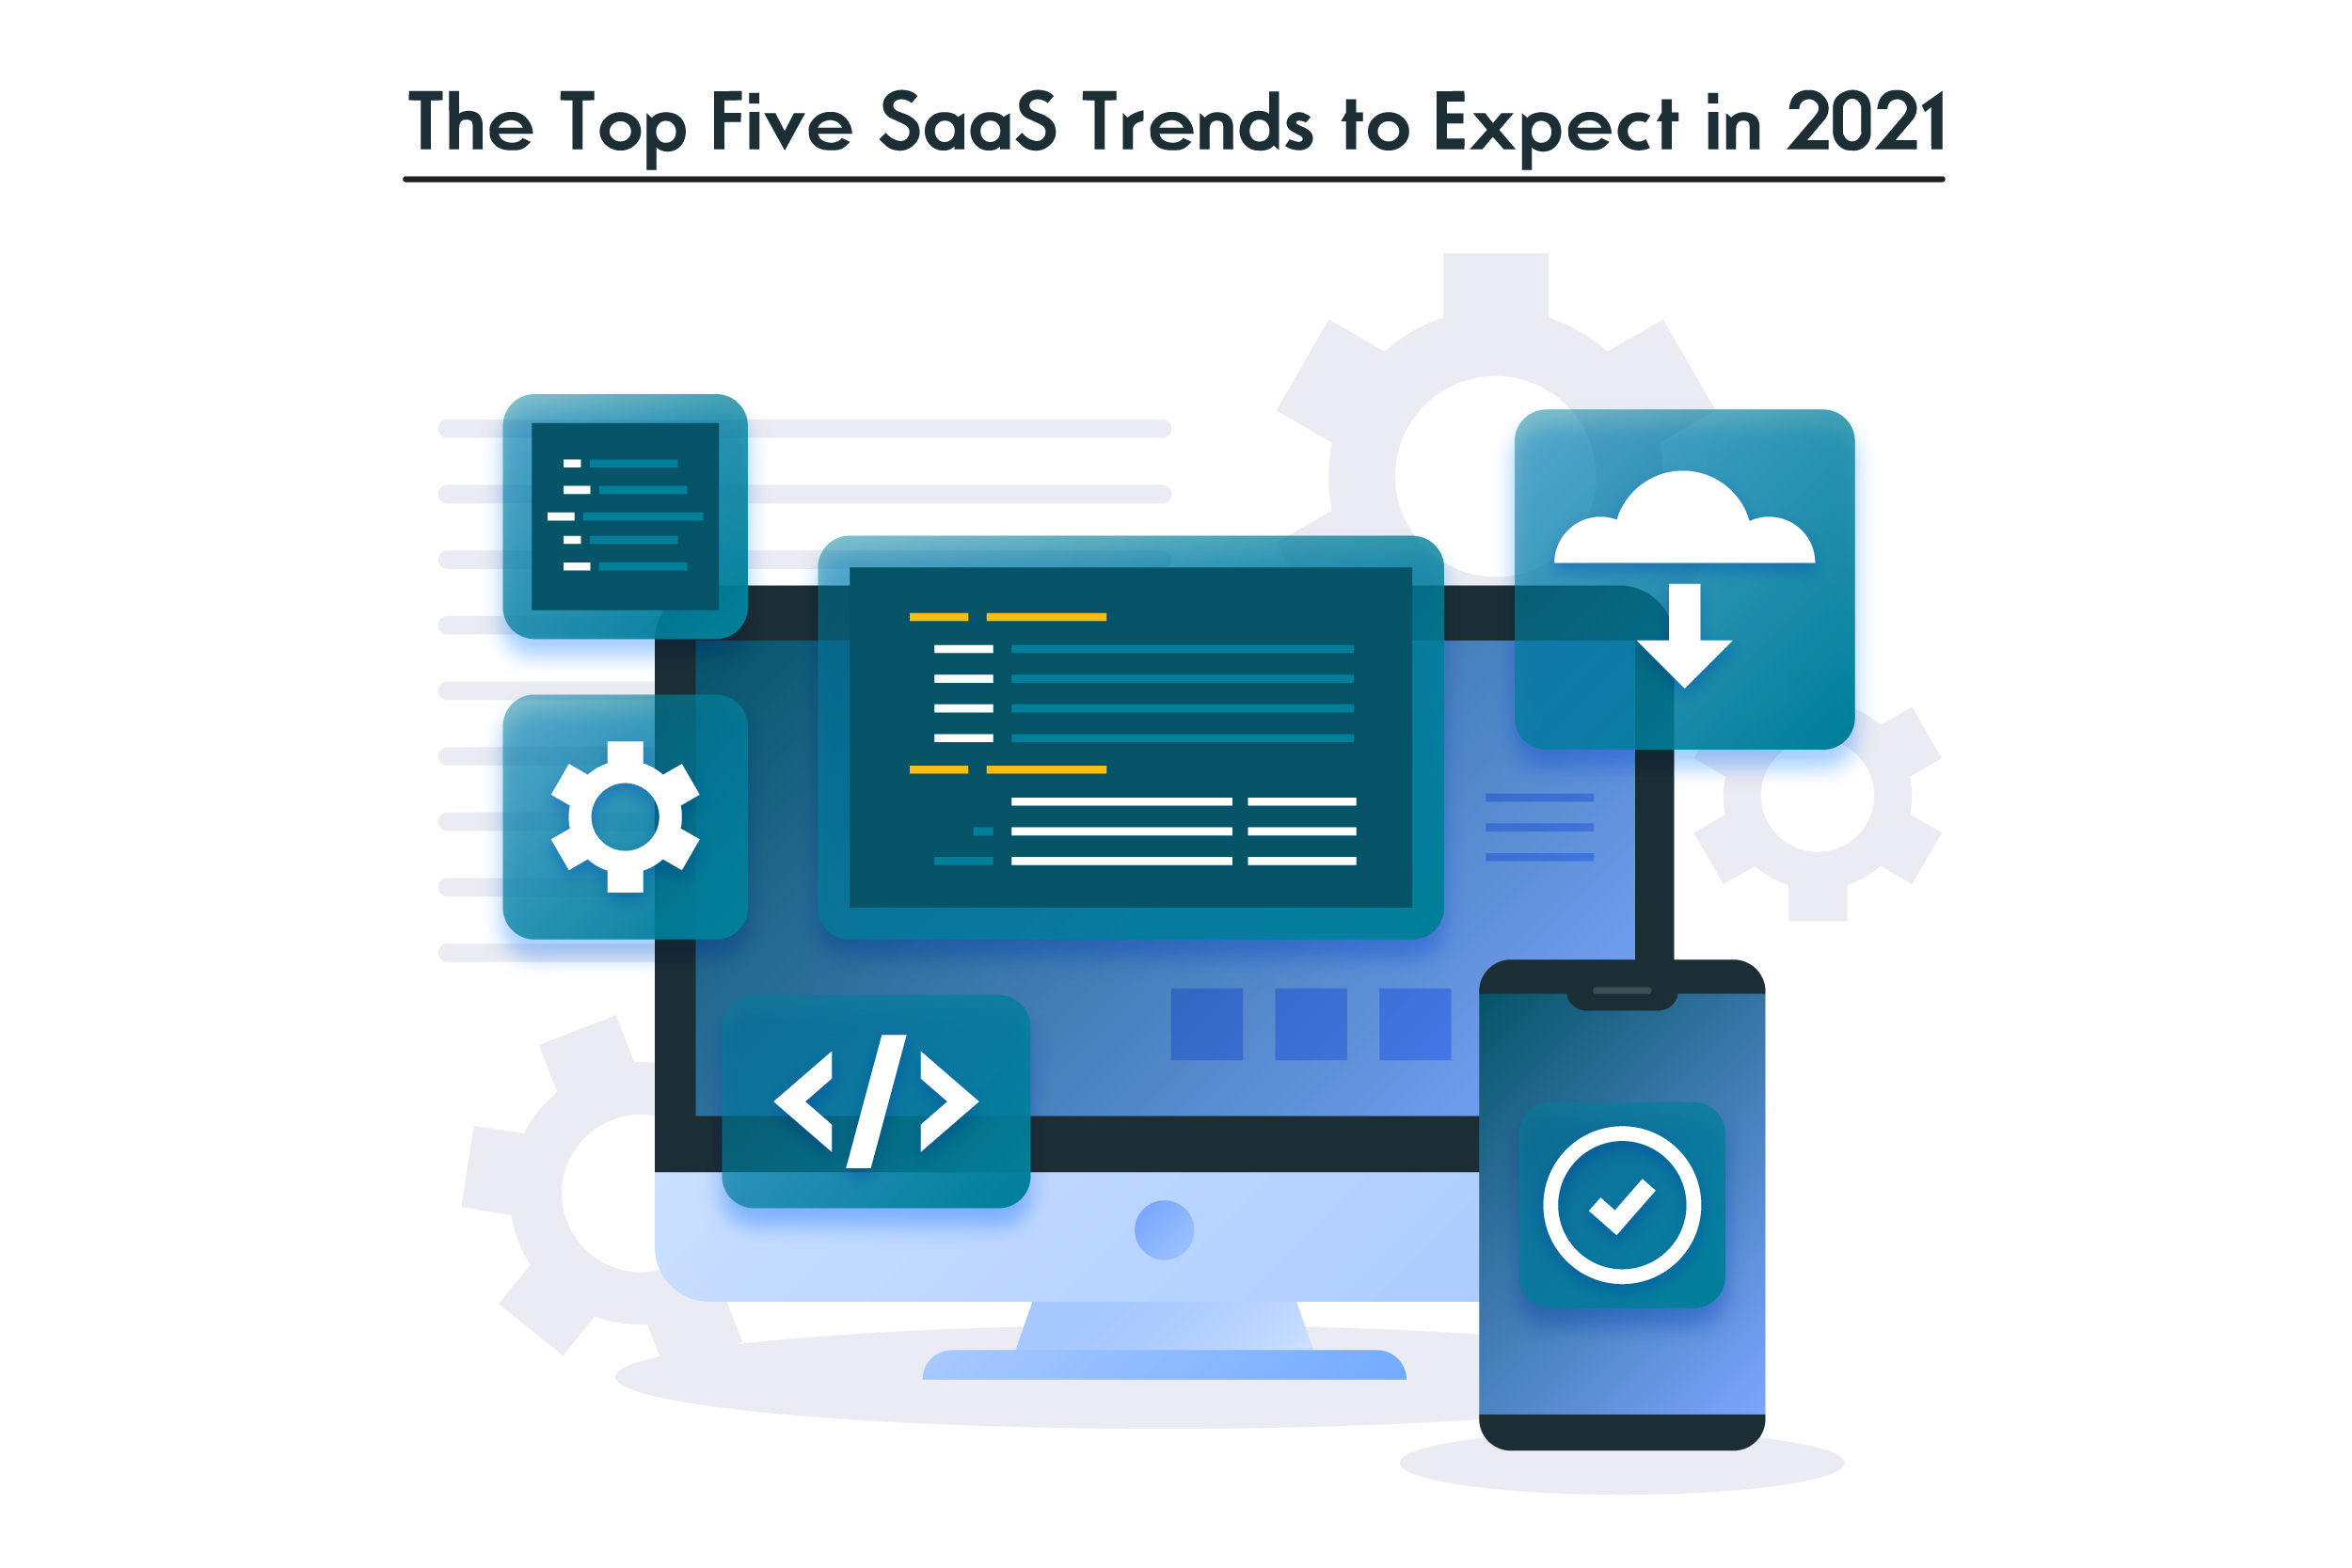 The Top Five SaaS Trends to Expect in 2021